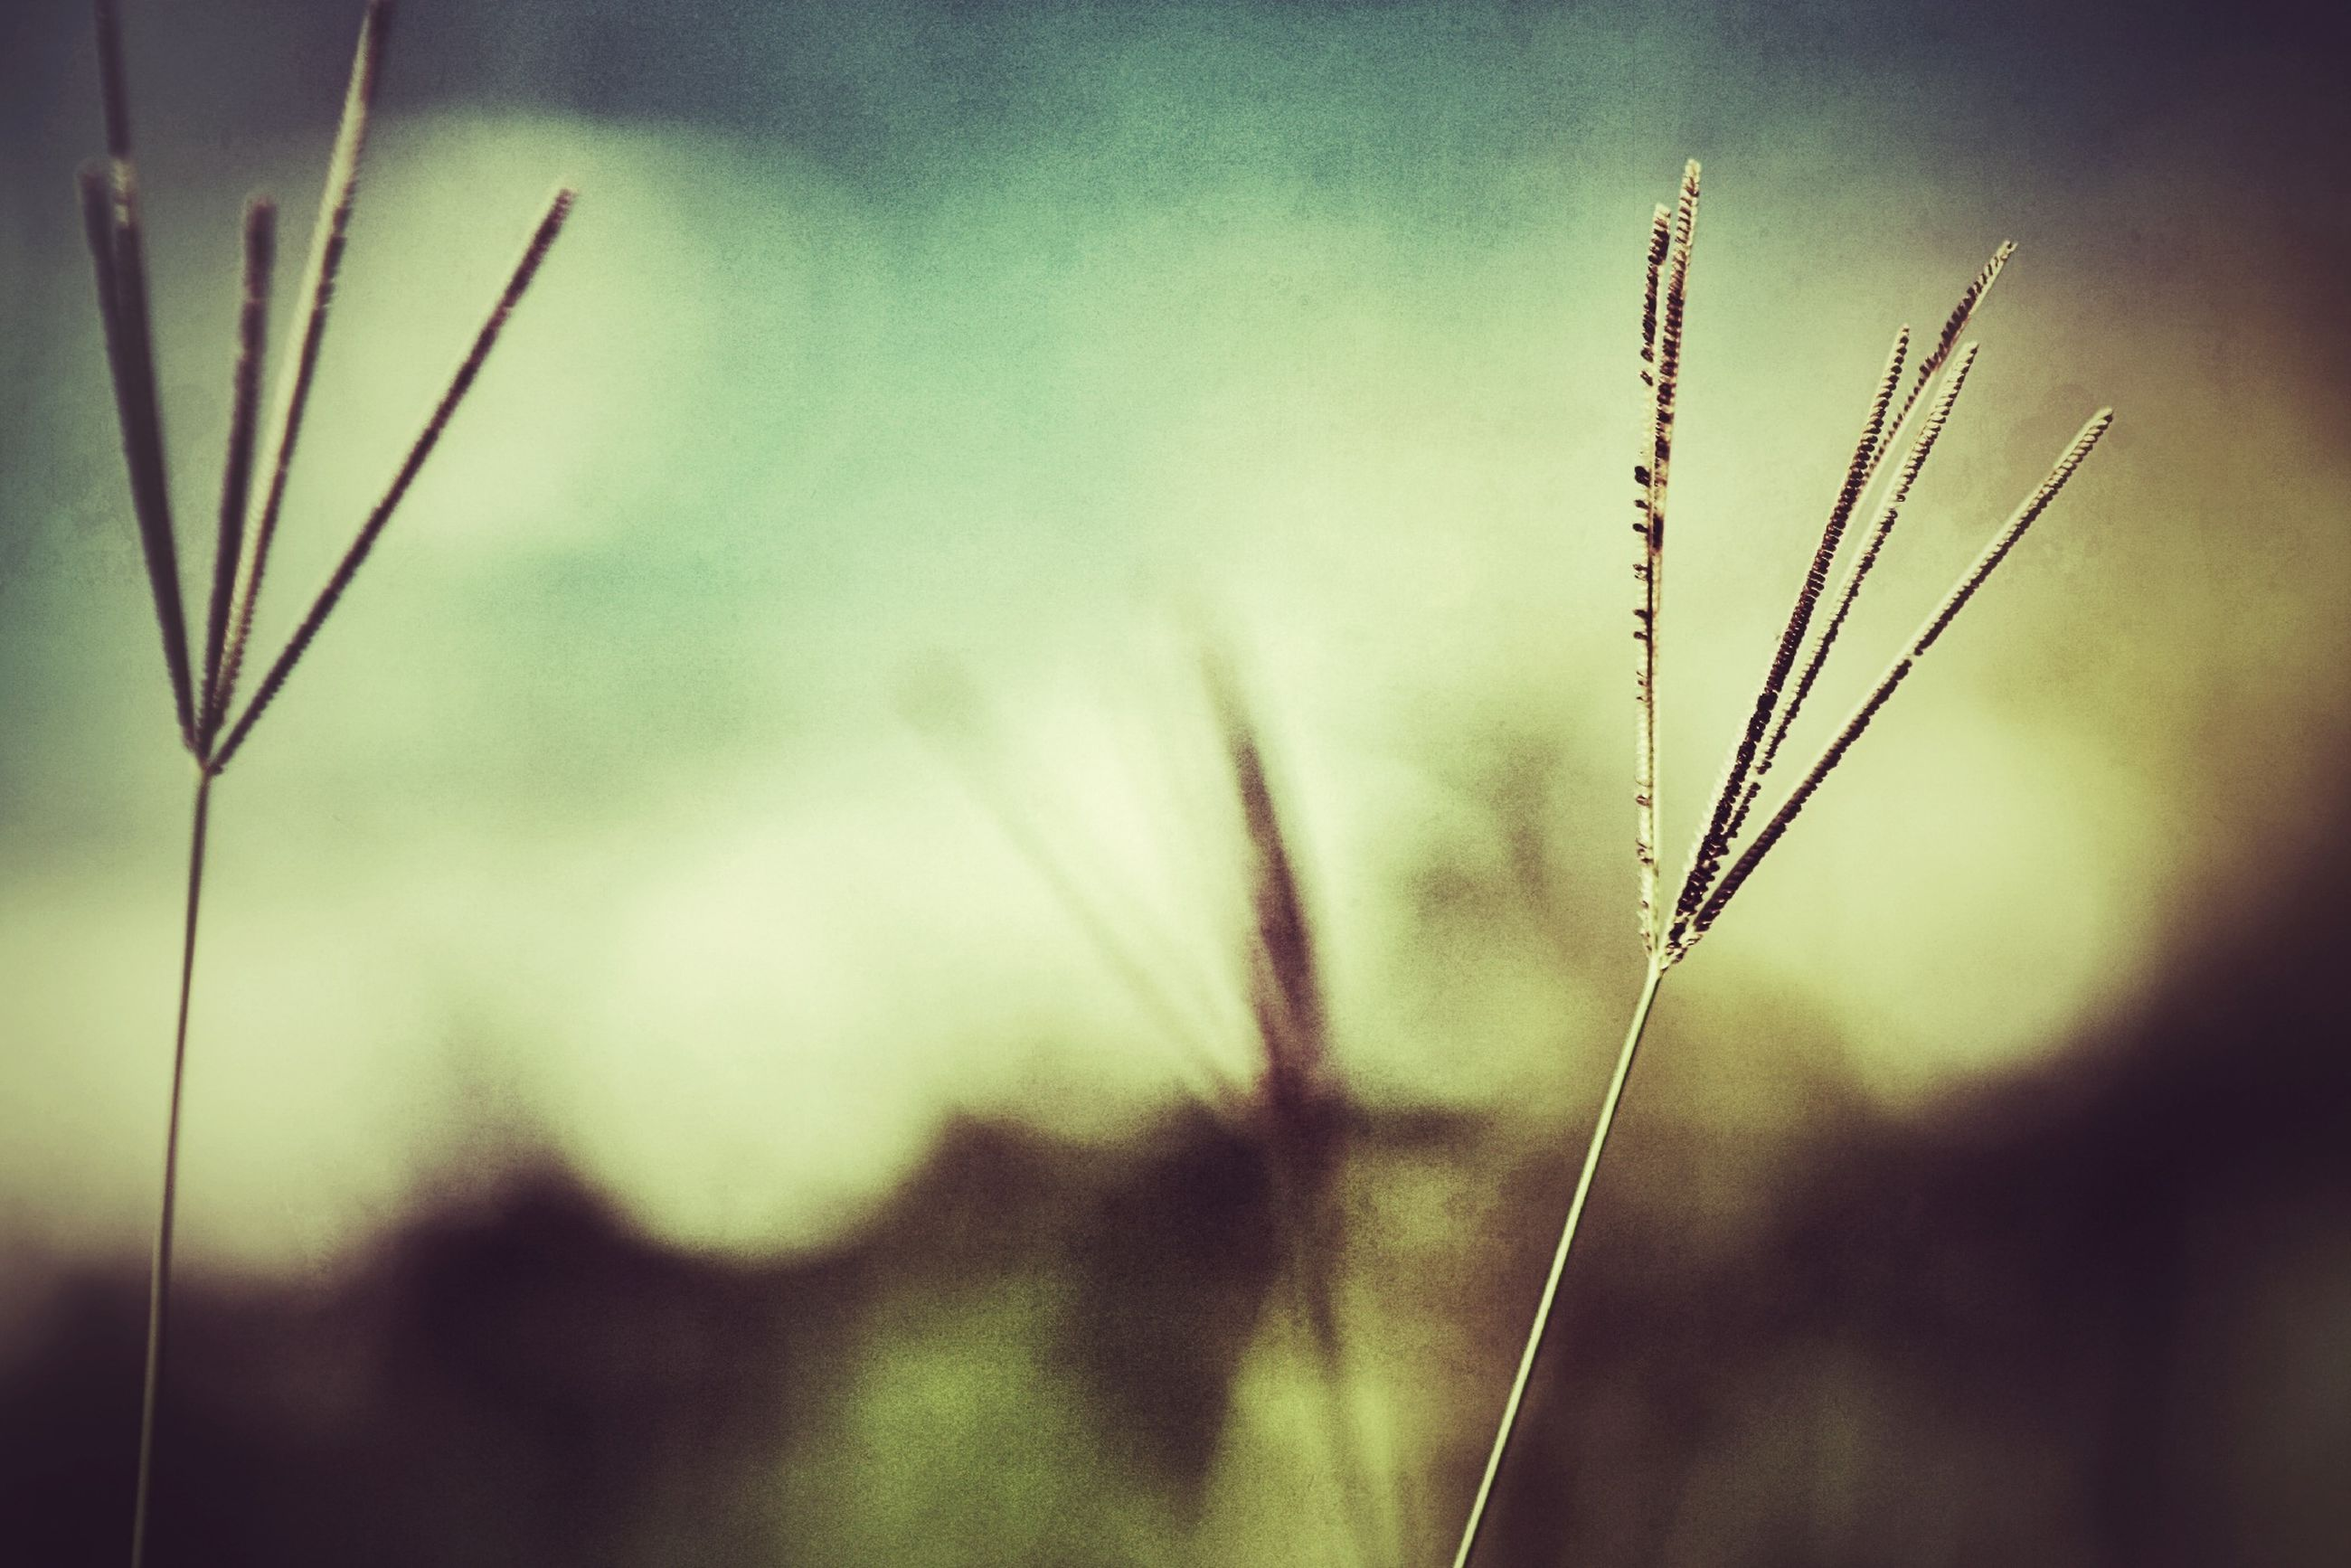 focus on foreground, plant, close-up, stem, growth, nature, selective focus, twig, fragility, grass, field, beauty in nature, day, outdoors, blade of grass, no people, tranquility, dry, freshness, flower